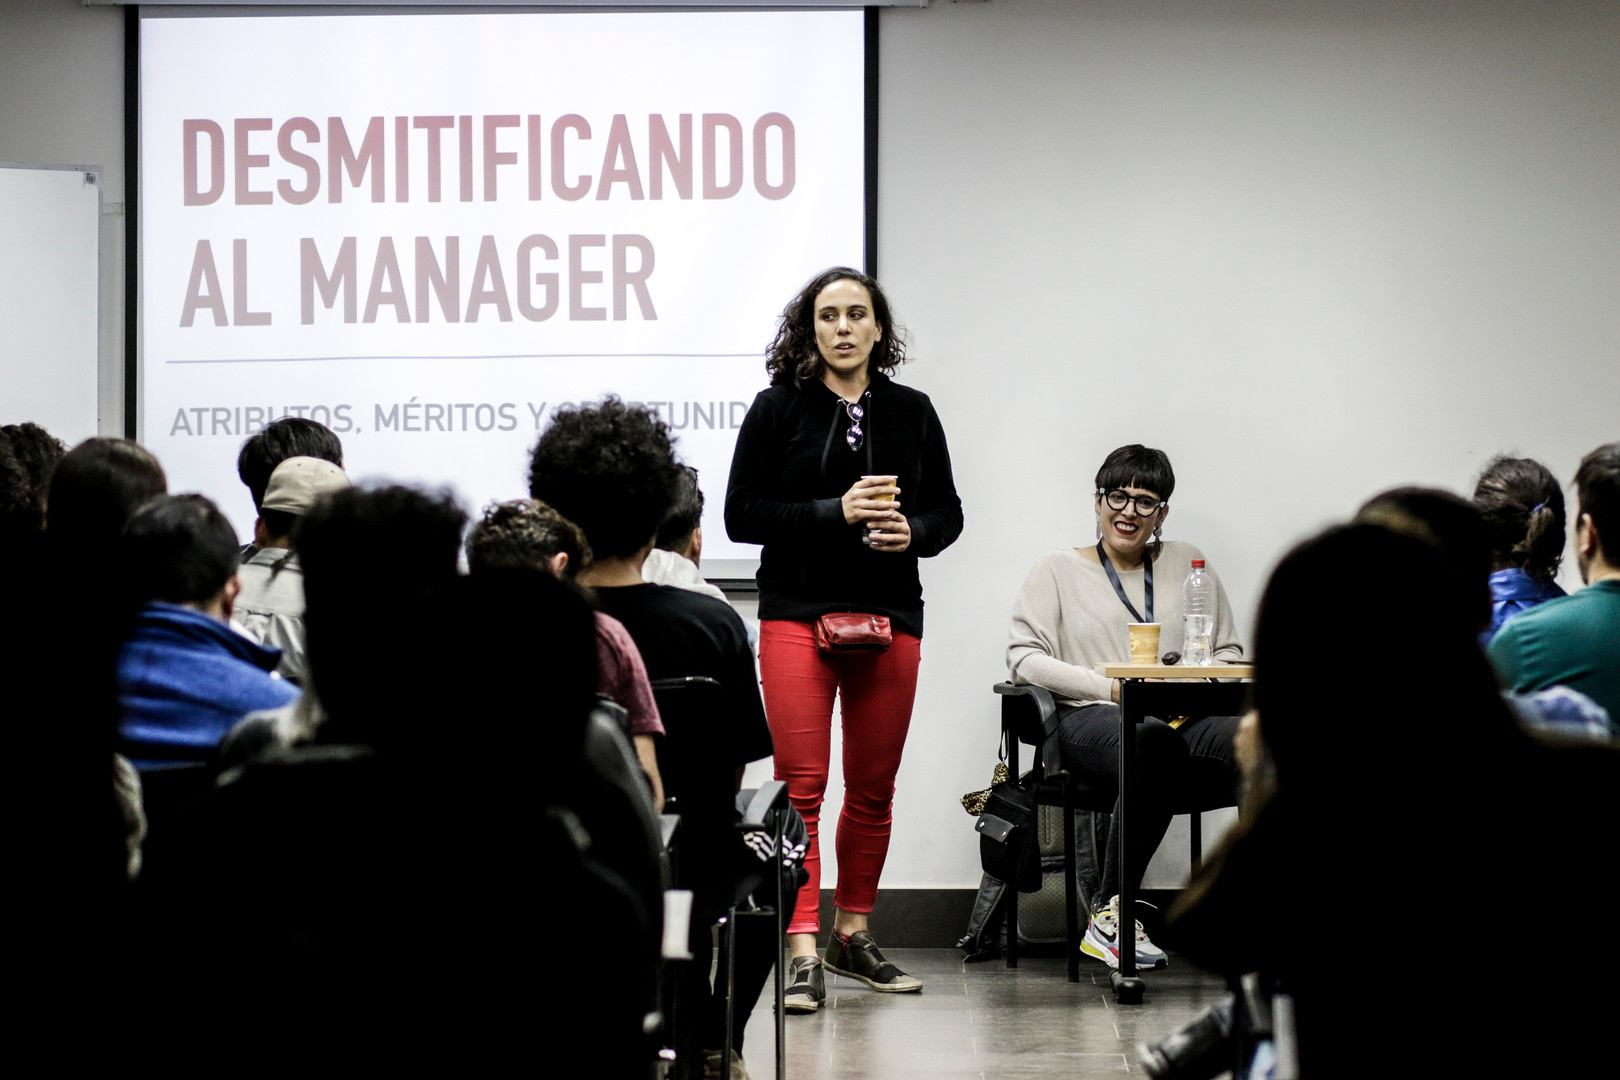 """Desmitificando al Manager"" - Conferencia"